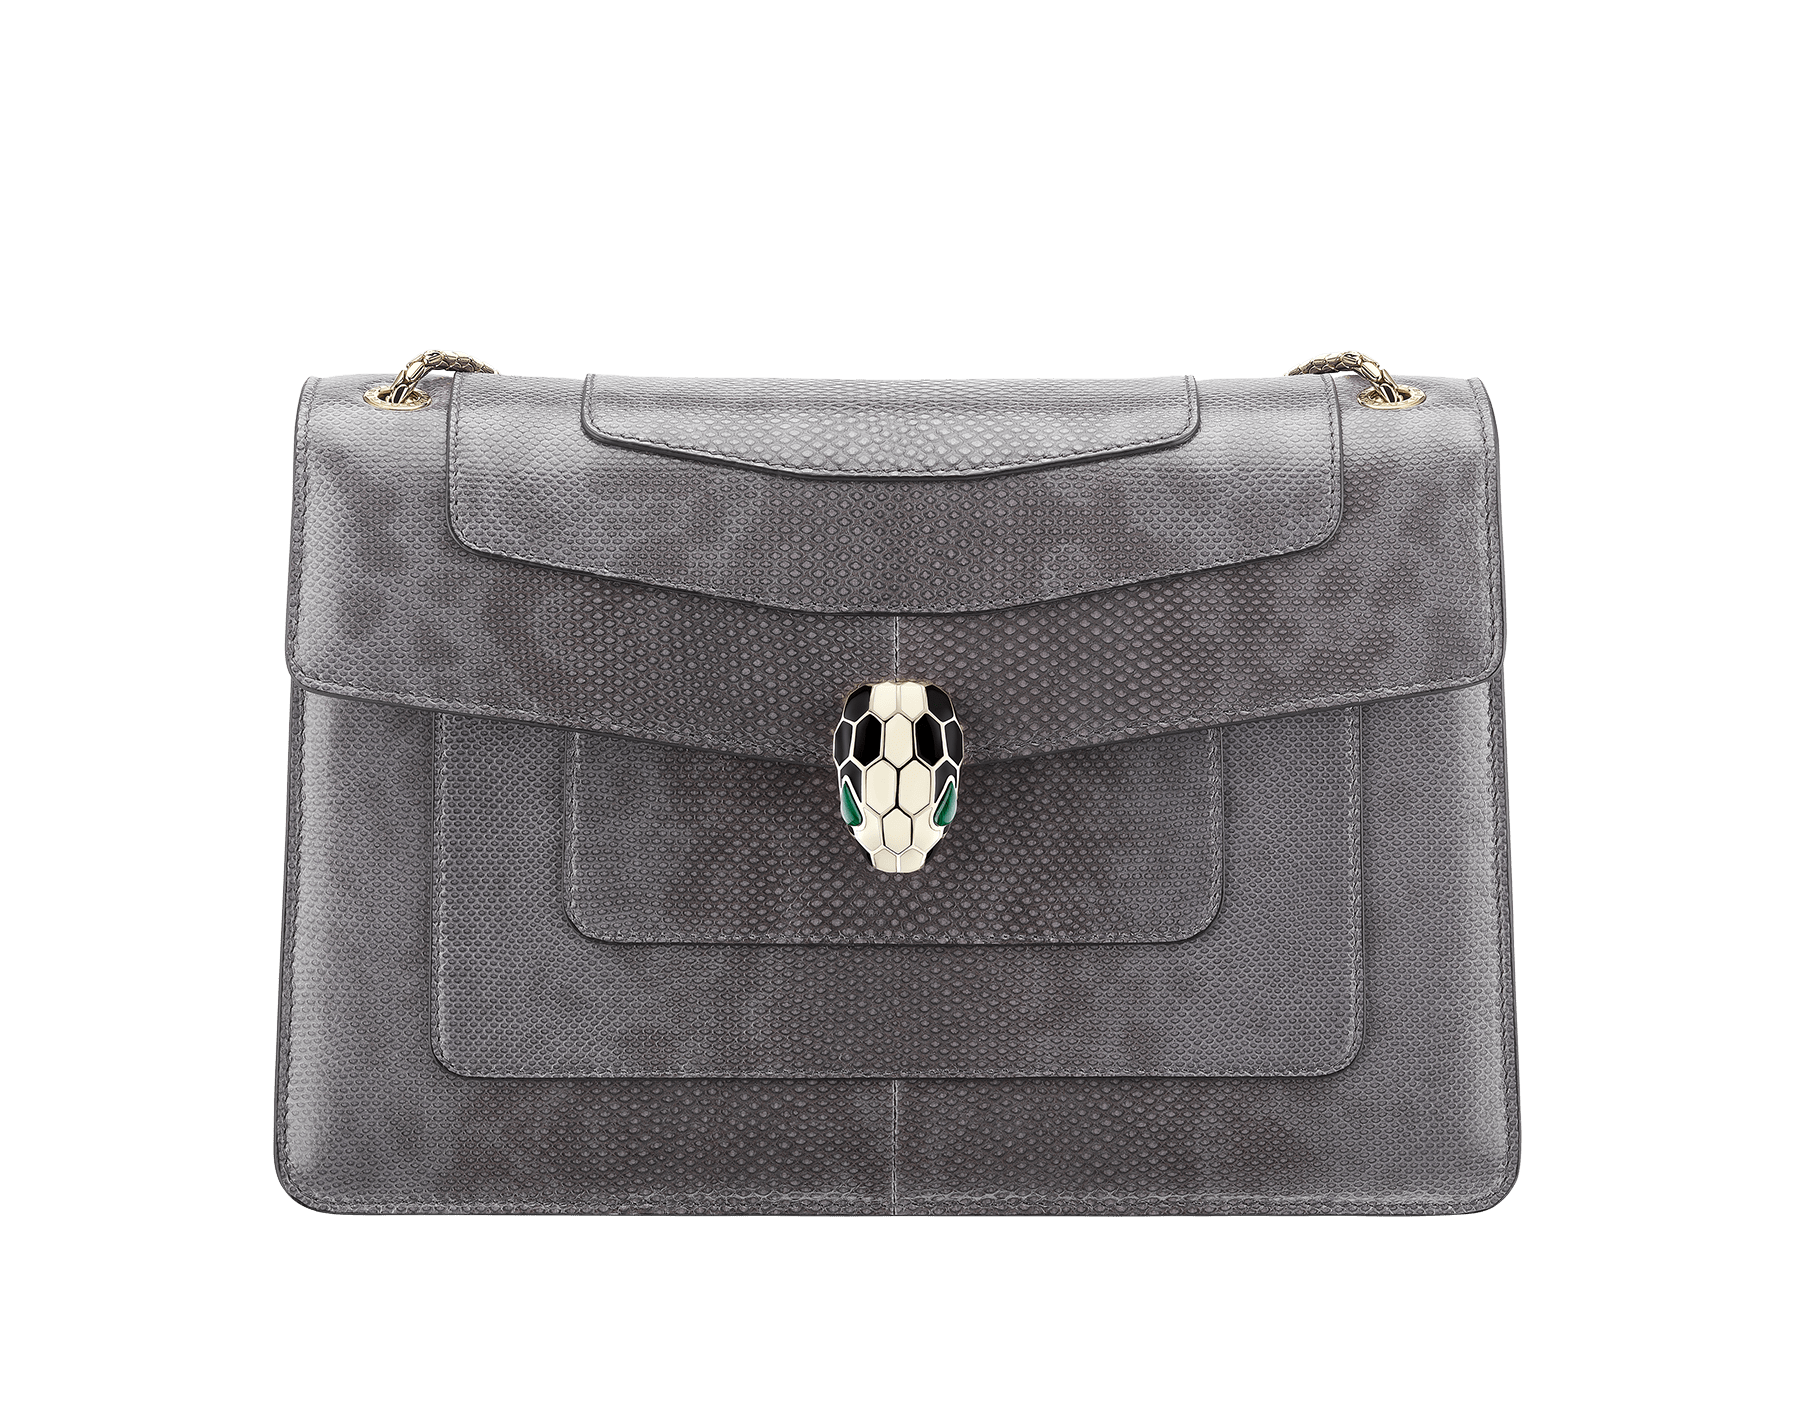 """""""Serpenti Forever"""" shoulder bag in rhapsody opal shiny karung skin. Iconic snakehead closure in light gold plated brass enriched with black and white enamel and green malachite eyes 287095 image 1"""